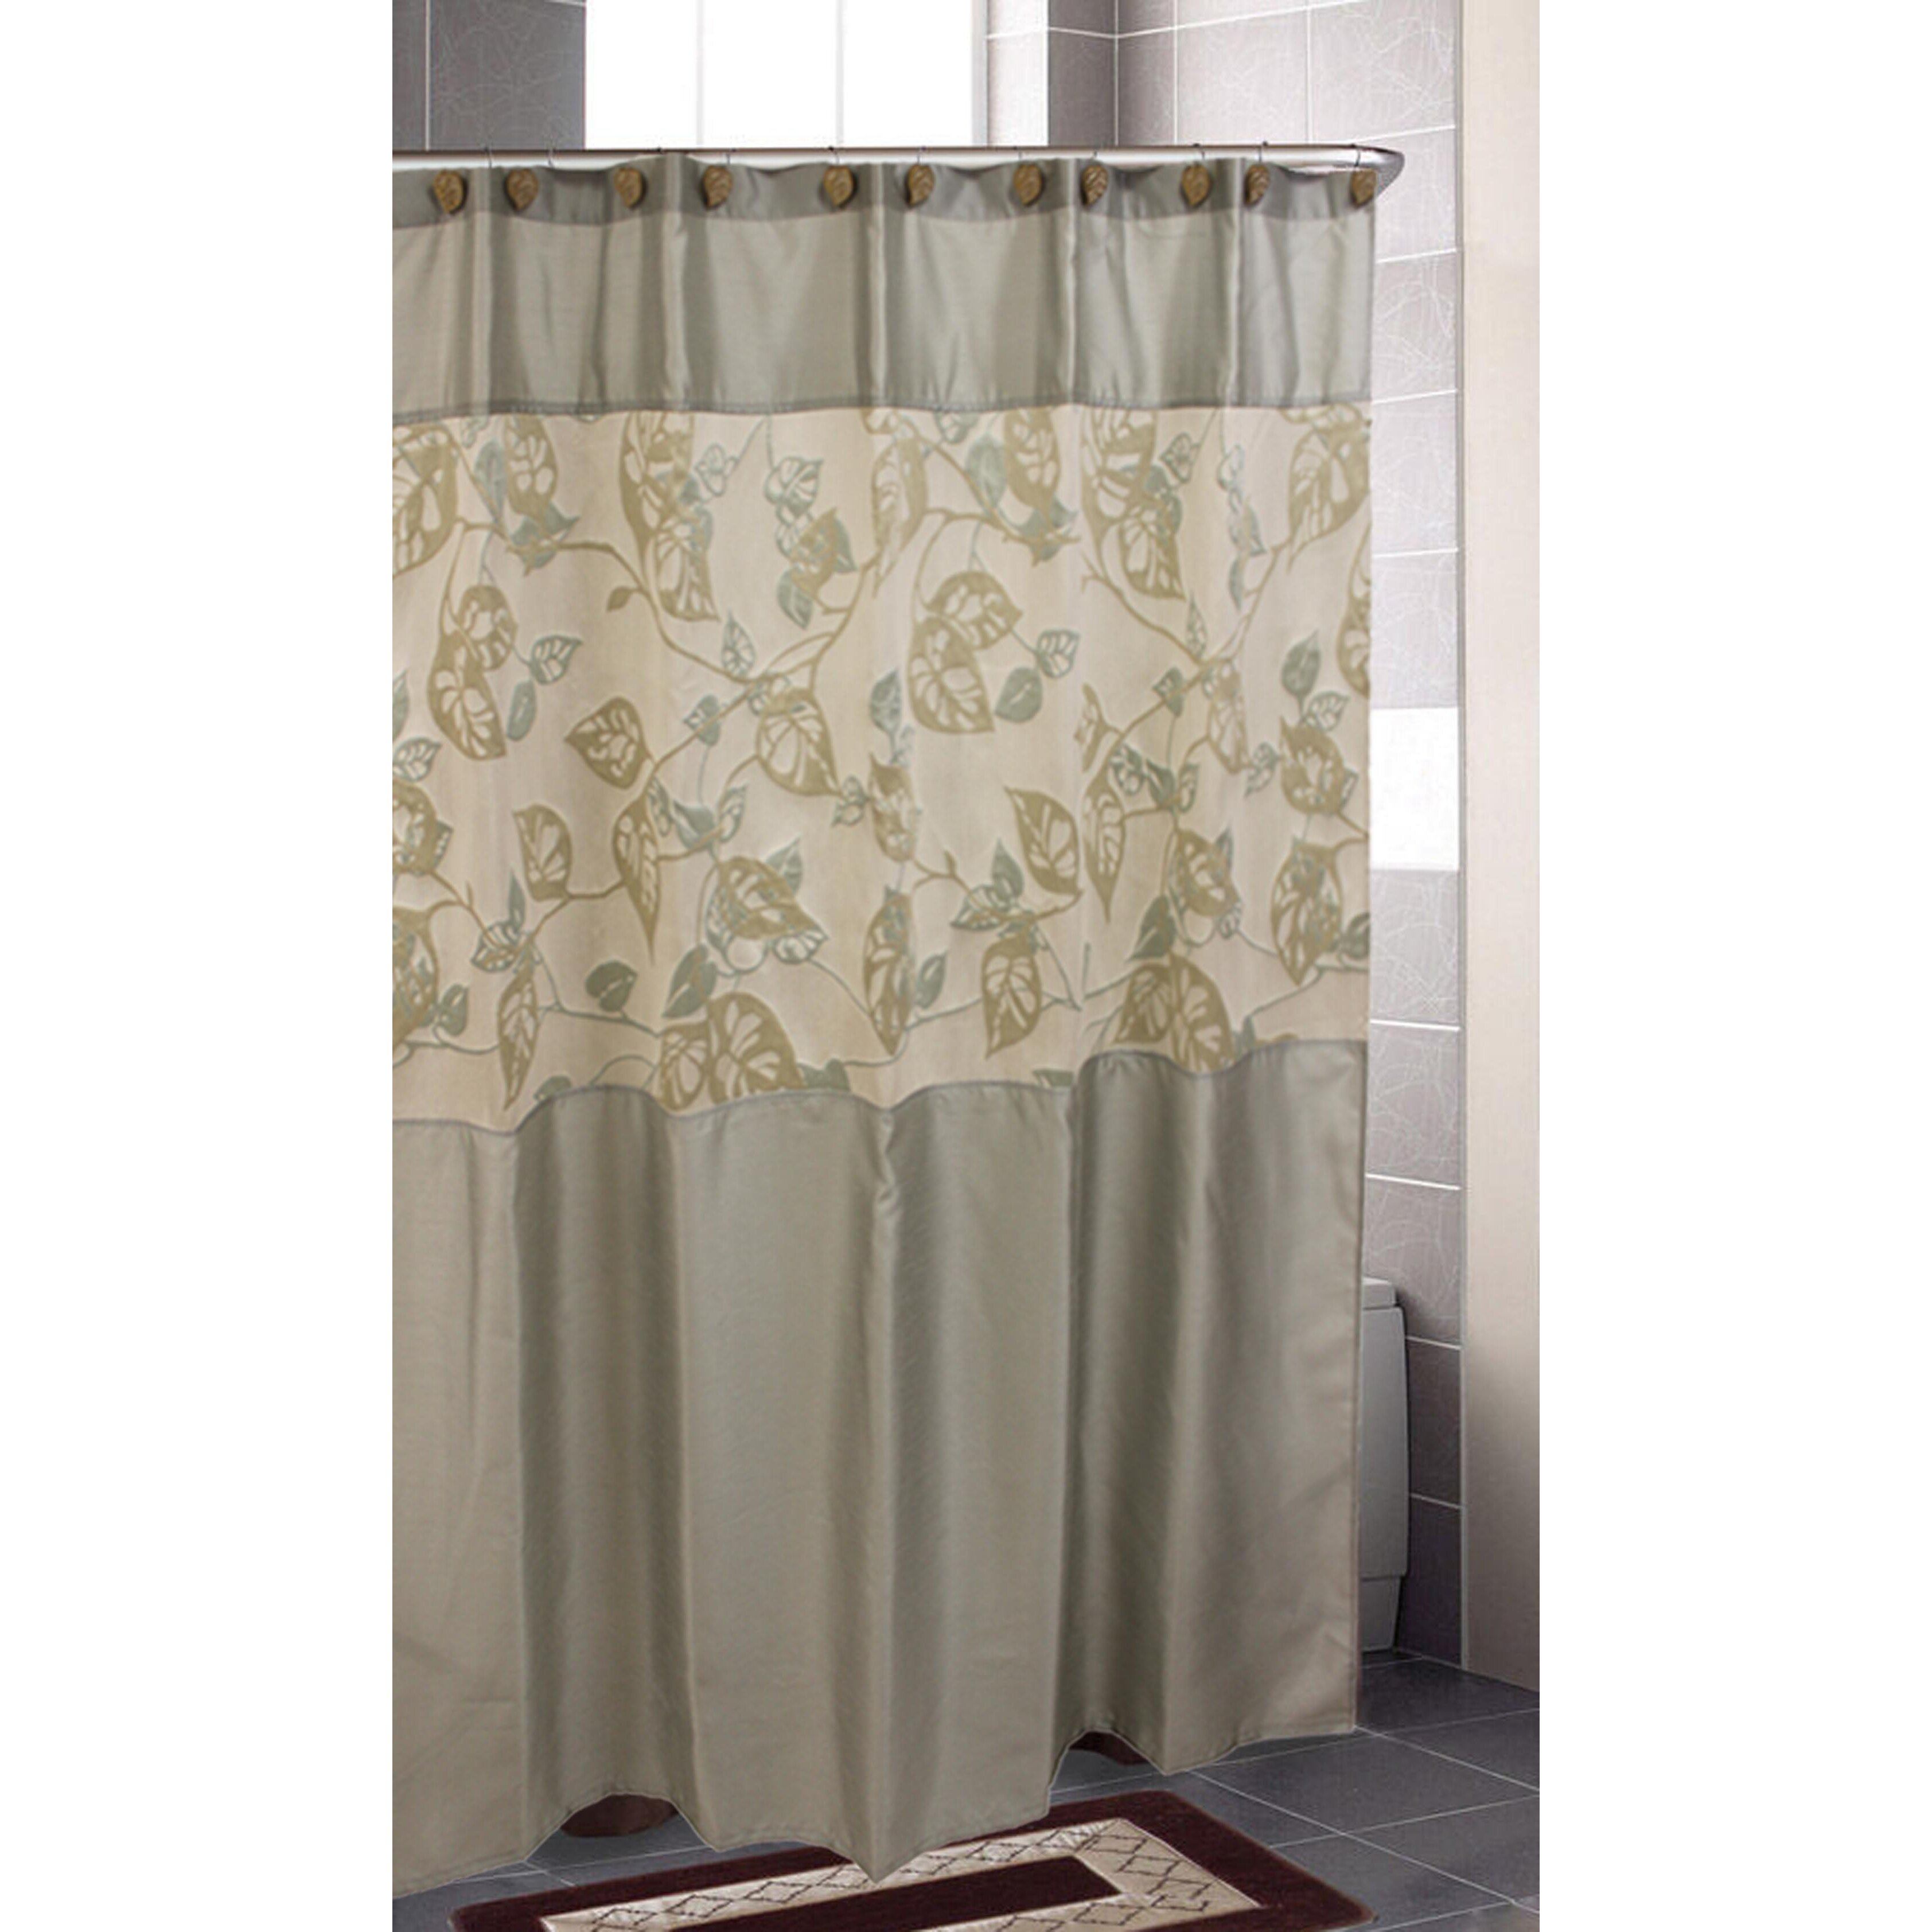 Jabots And Swags Curtains Pfaltzgraff Shower Curtains